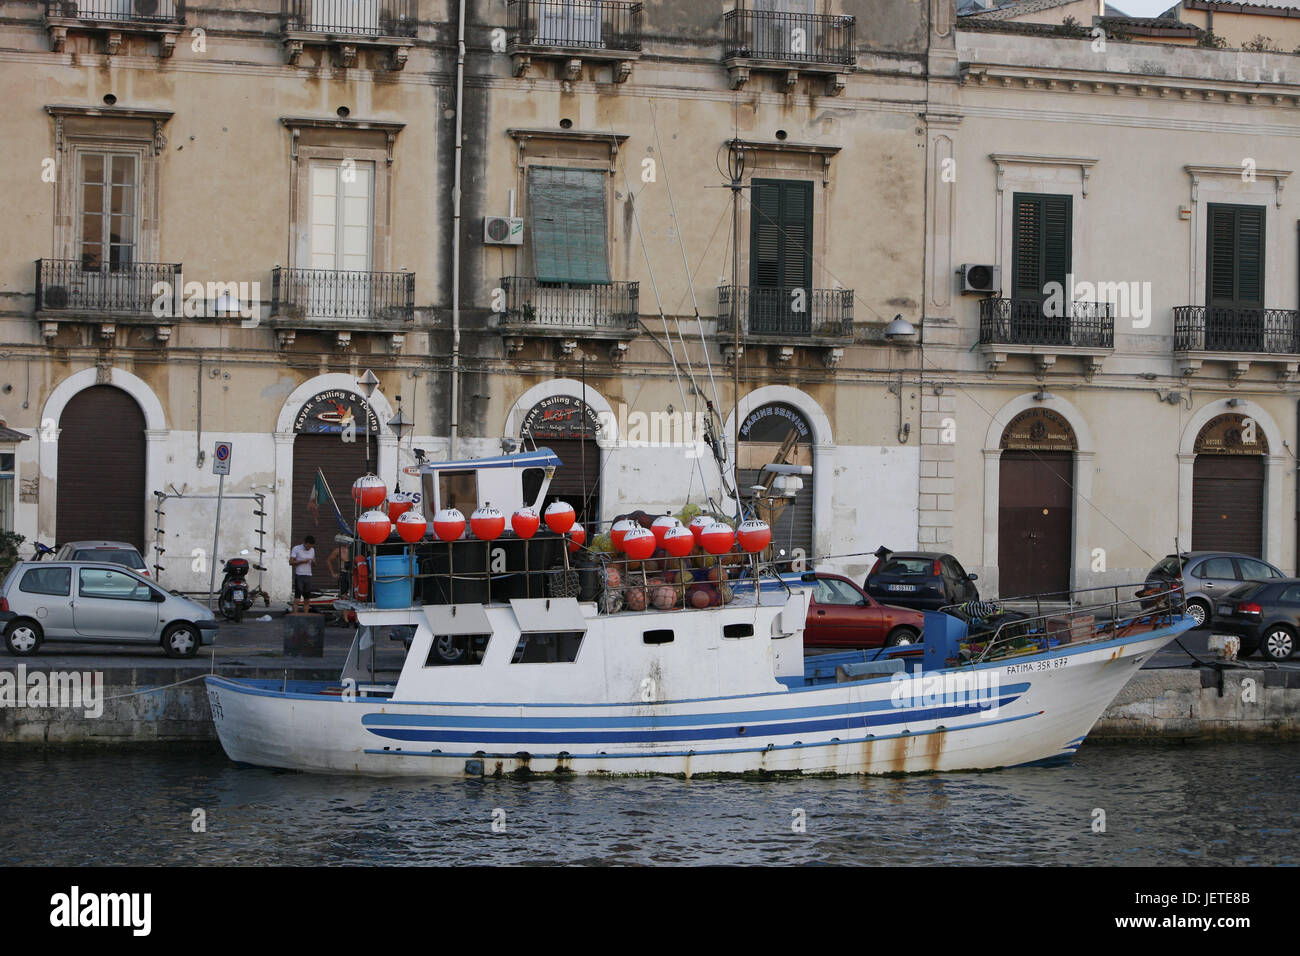 Italy, Sicily, island Ortygia, Syracuse, Old Town, channel, landing stage, fishing boat, Southern Europe, Siracusa, - Stock Image